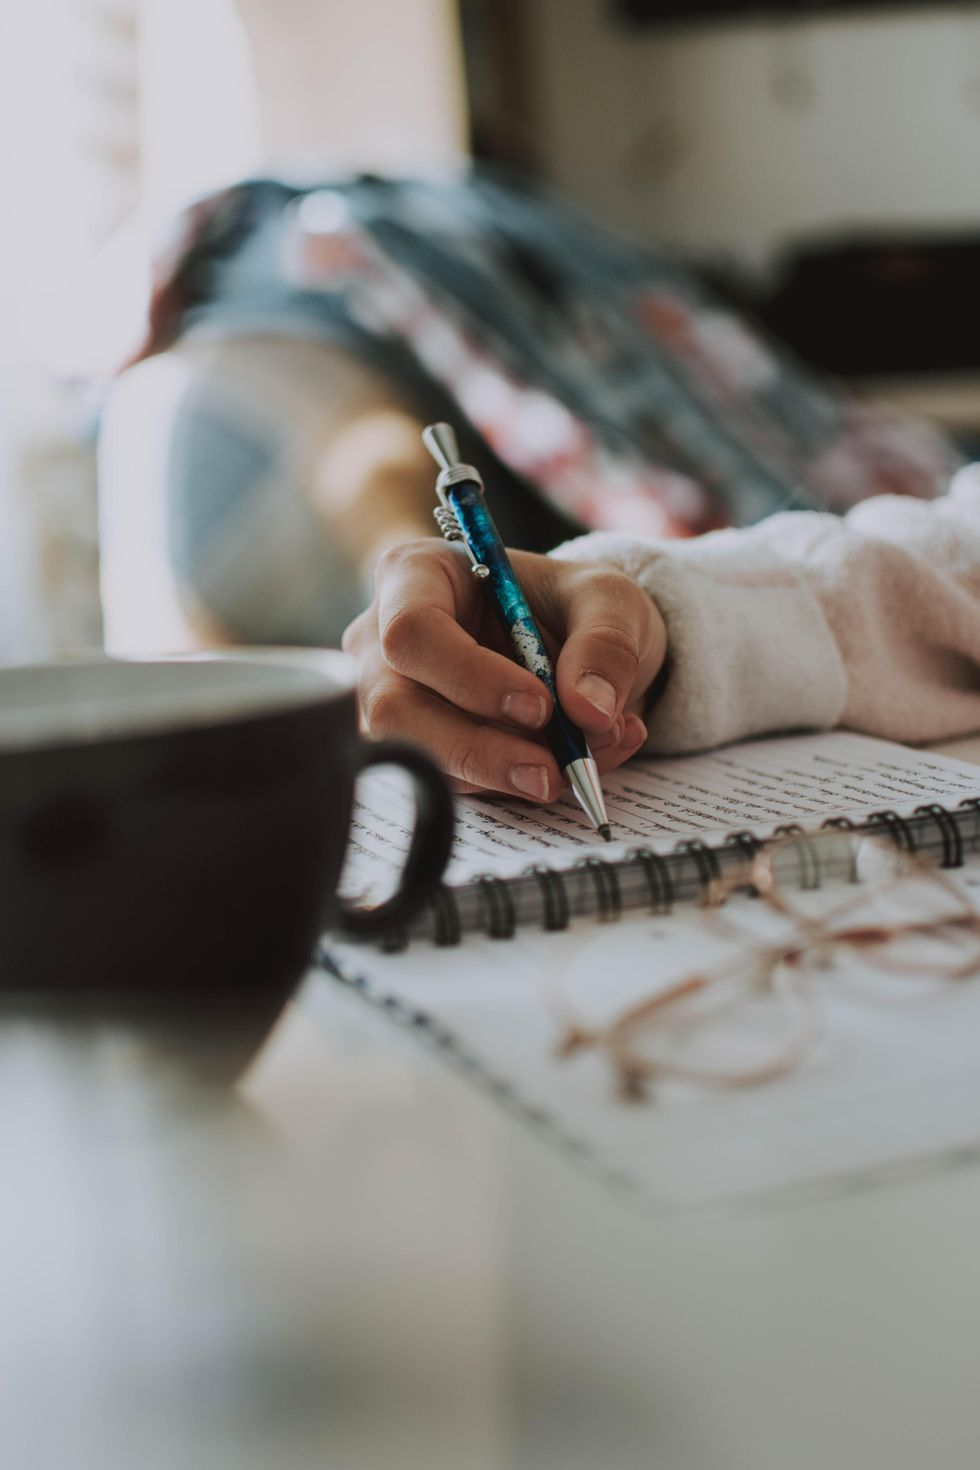 Person's hand writing with a pen onto a notebook with a mug in the foreground.